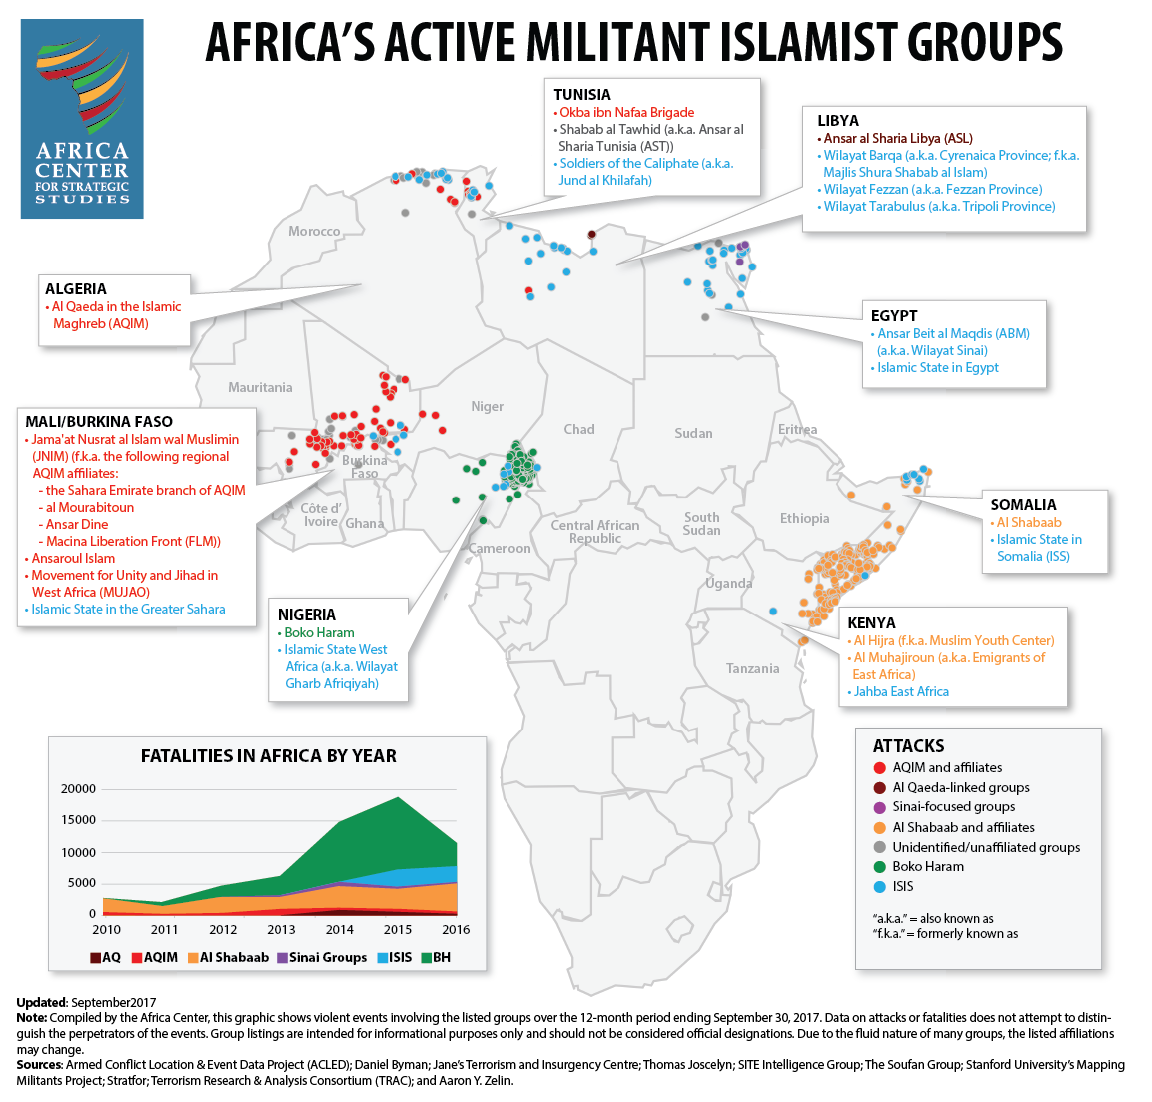 Militant Islamist Groups in Africa, as of September 2017